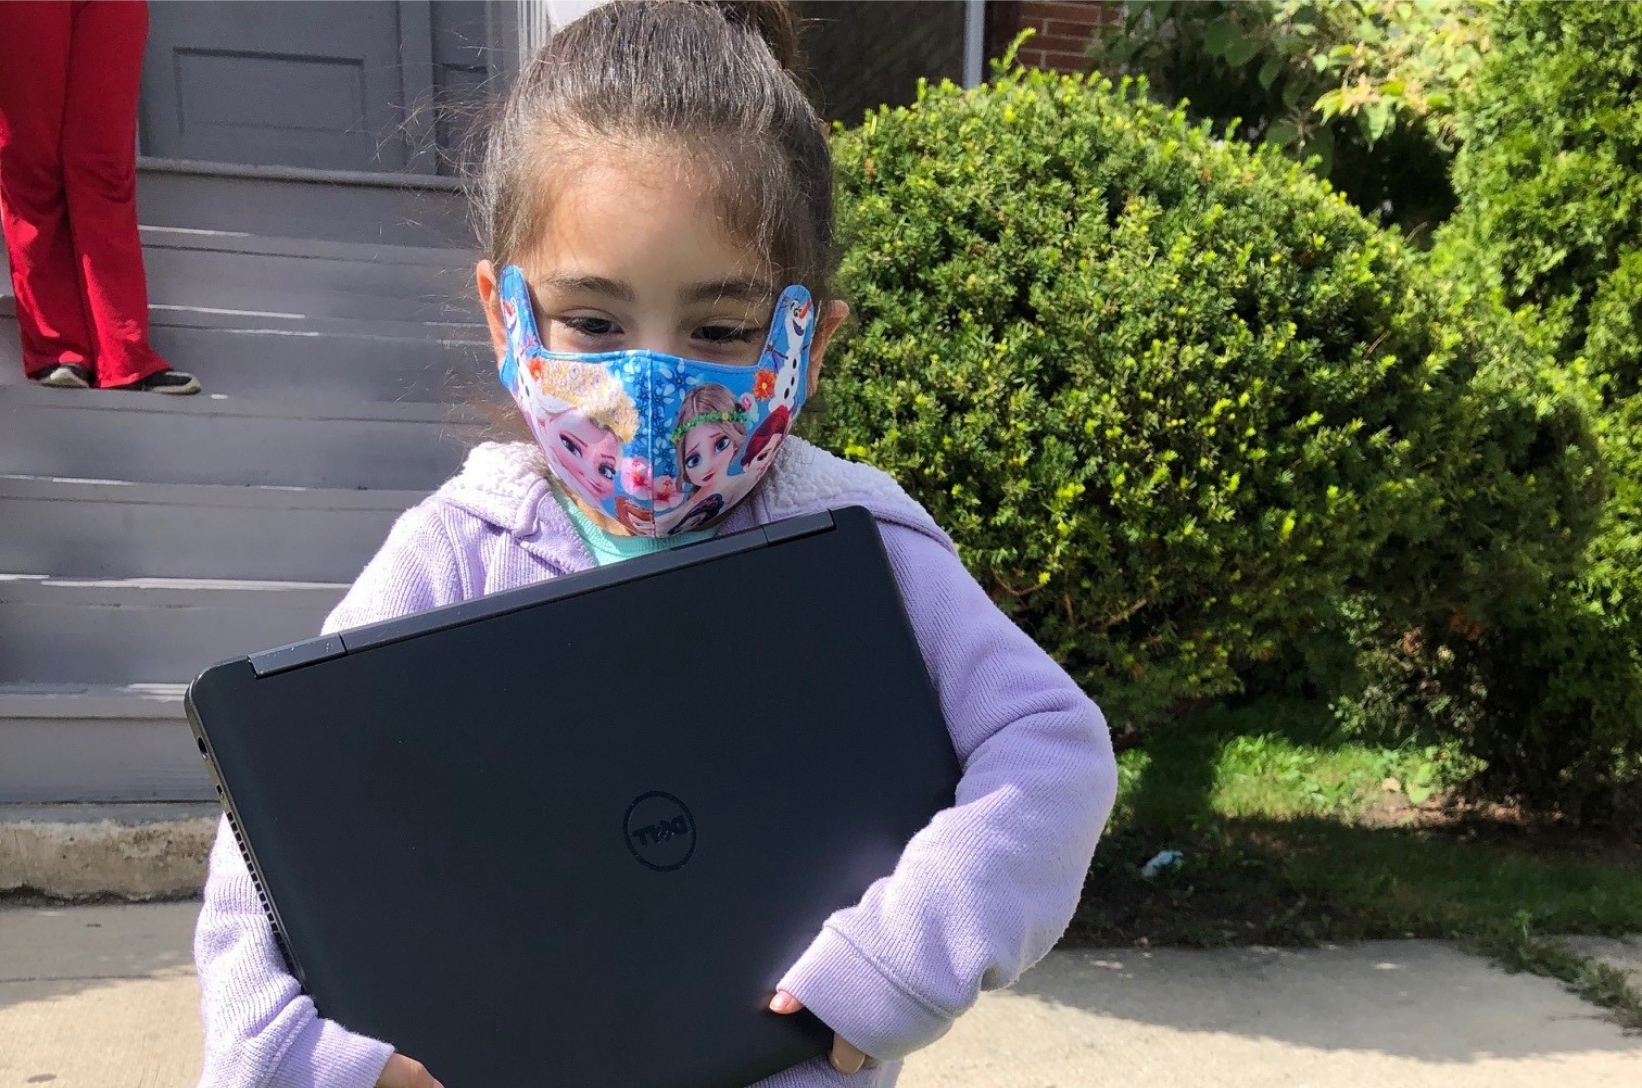 A young girl in a mask holds a donated laptop